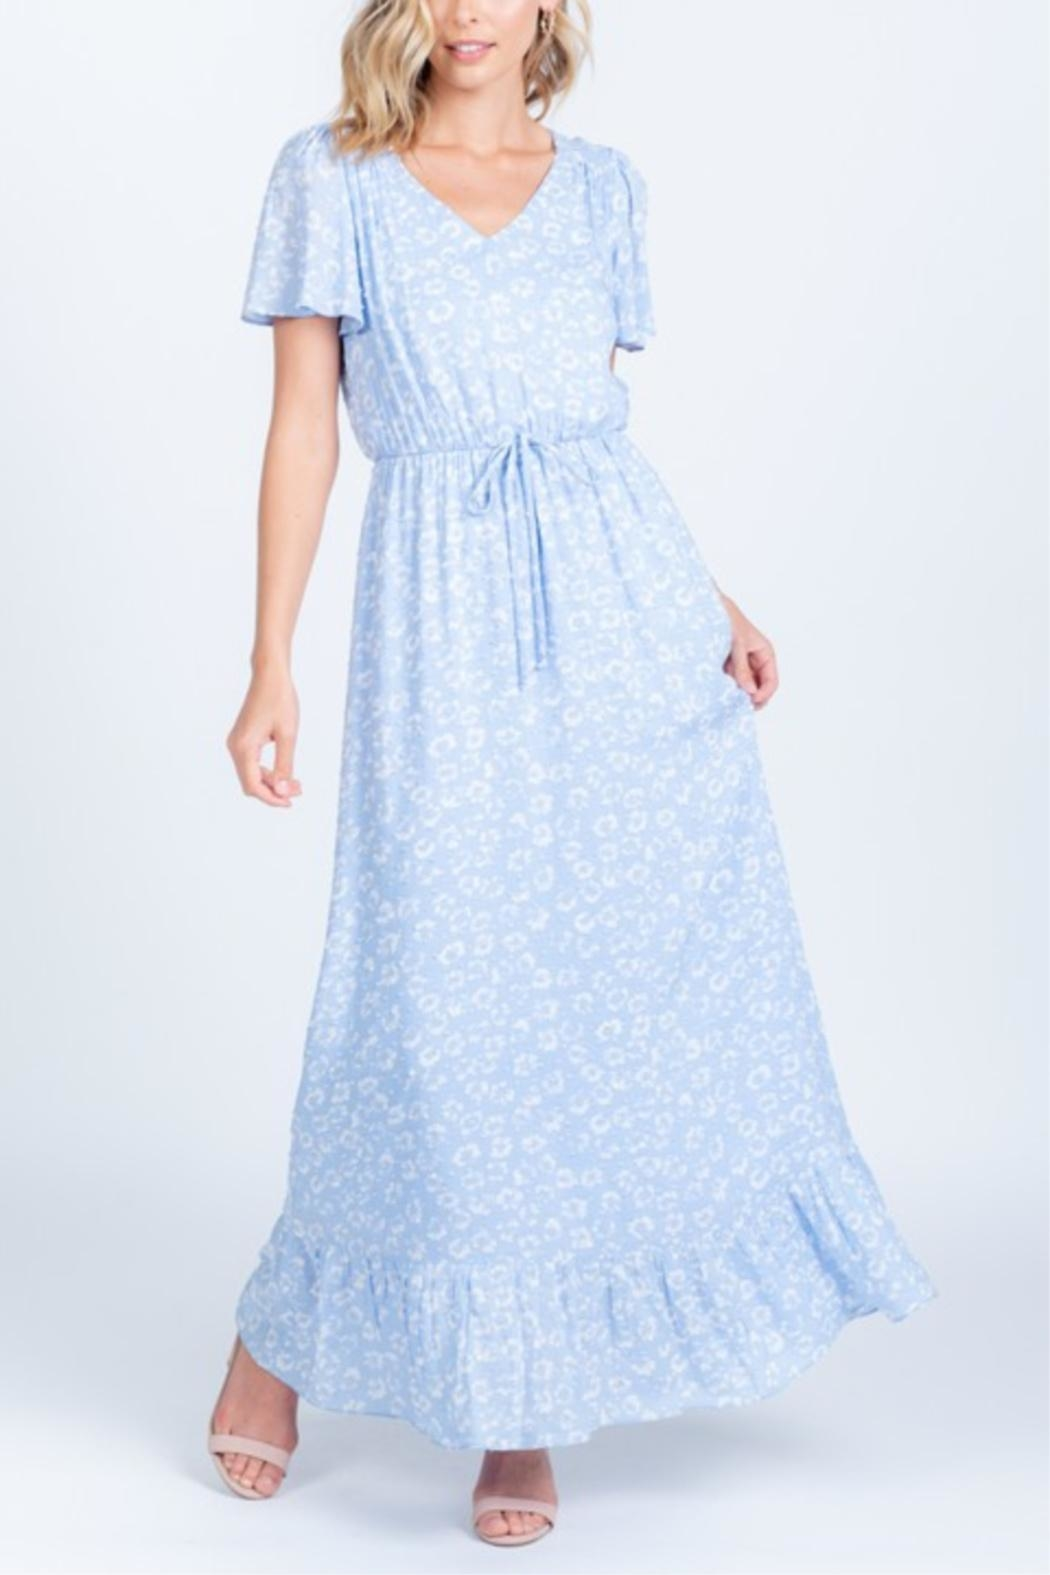 Everly Head In The Clouds-Dress - Front Full Image